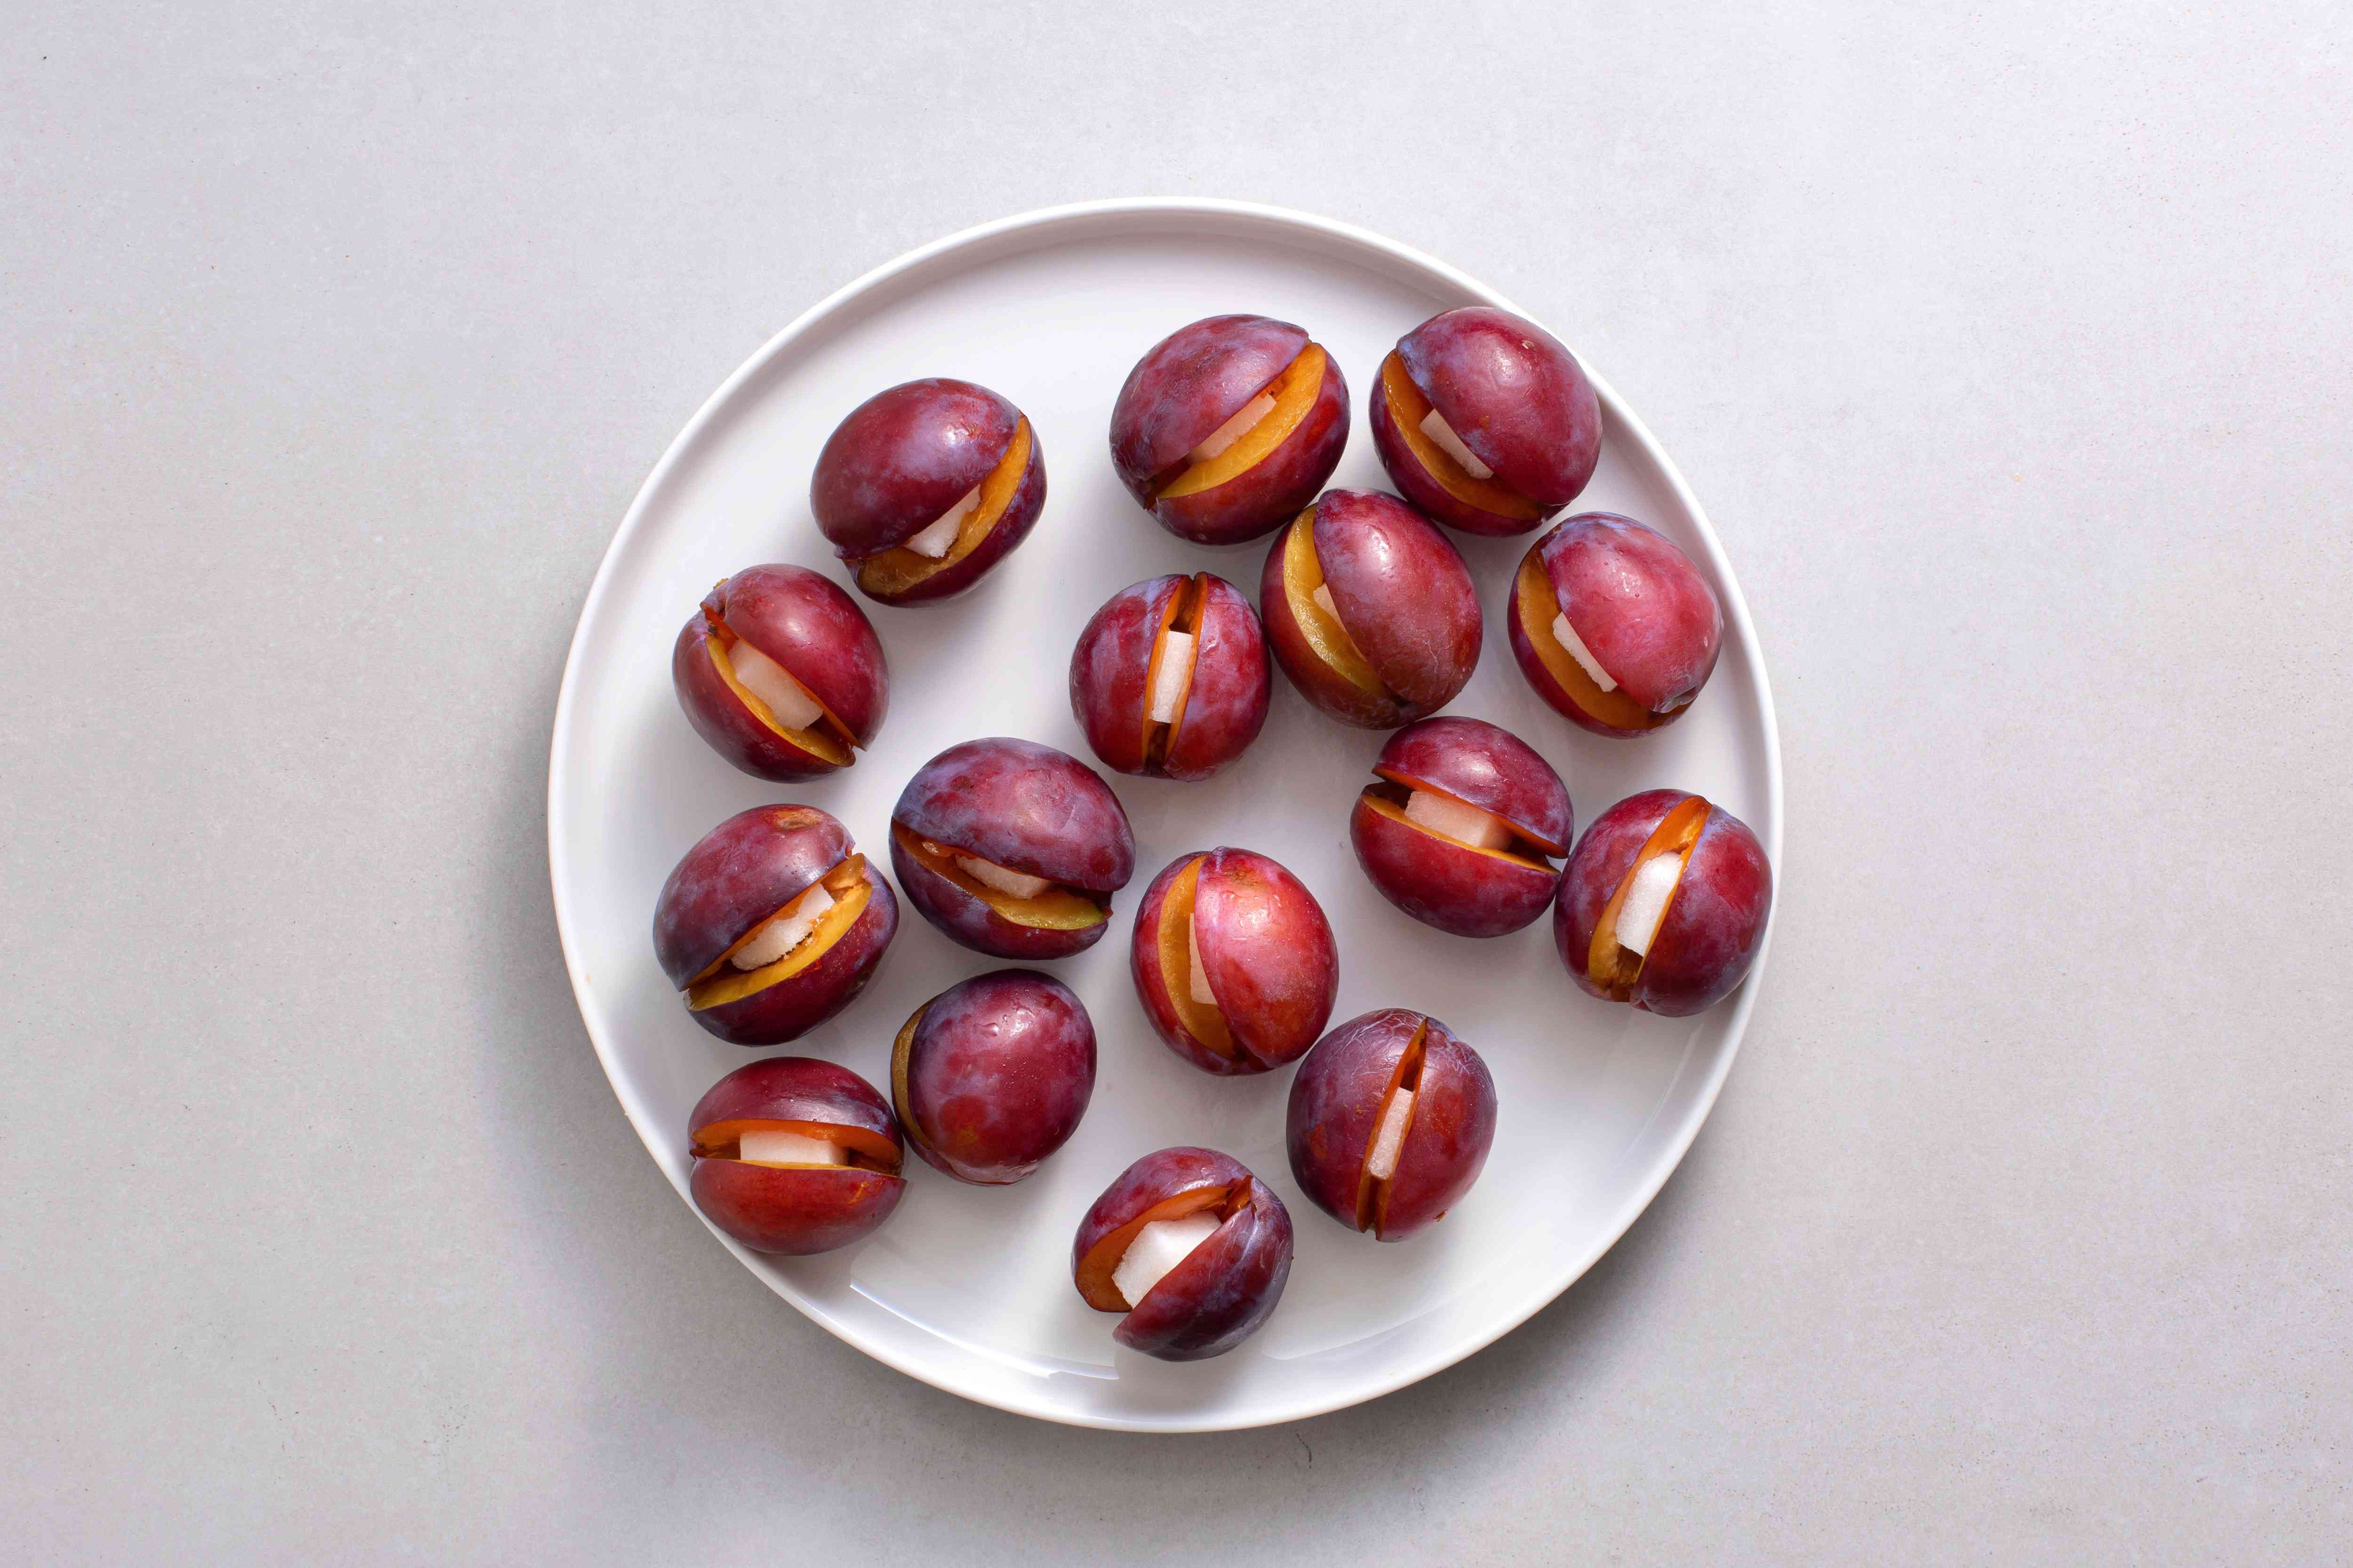 plum with sugar cubes on a plate